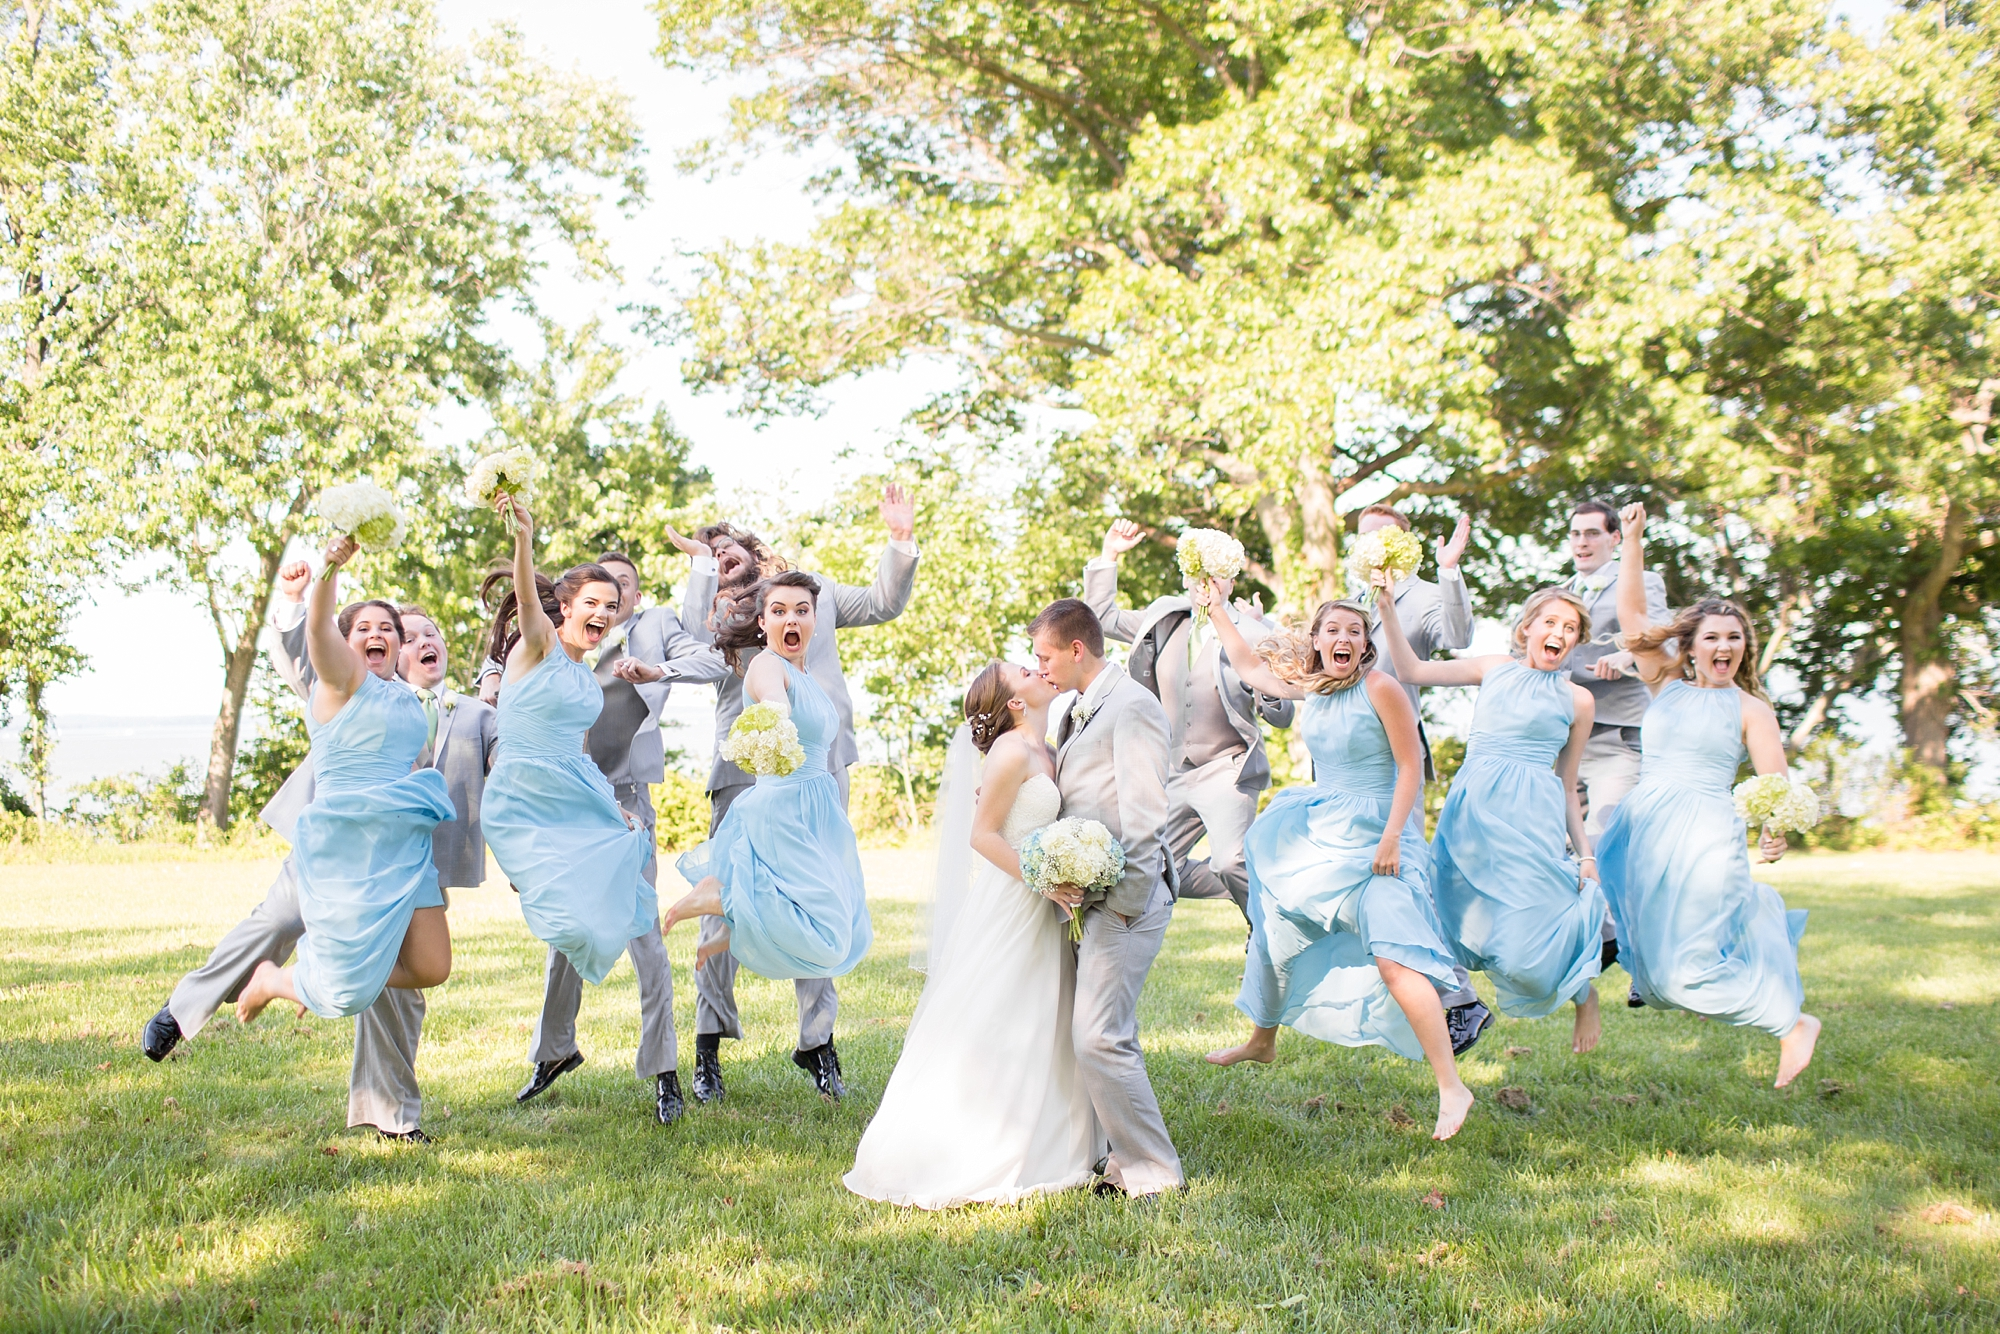 Mroz 2-Bridal Party-547_anna grace photography top of the bay maryland wedding photographer photo.jpg